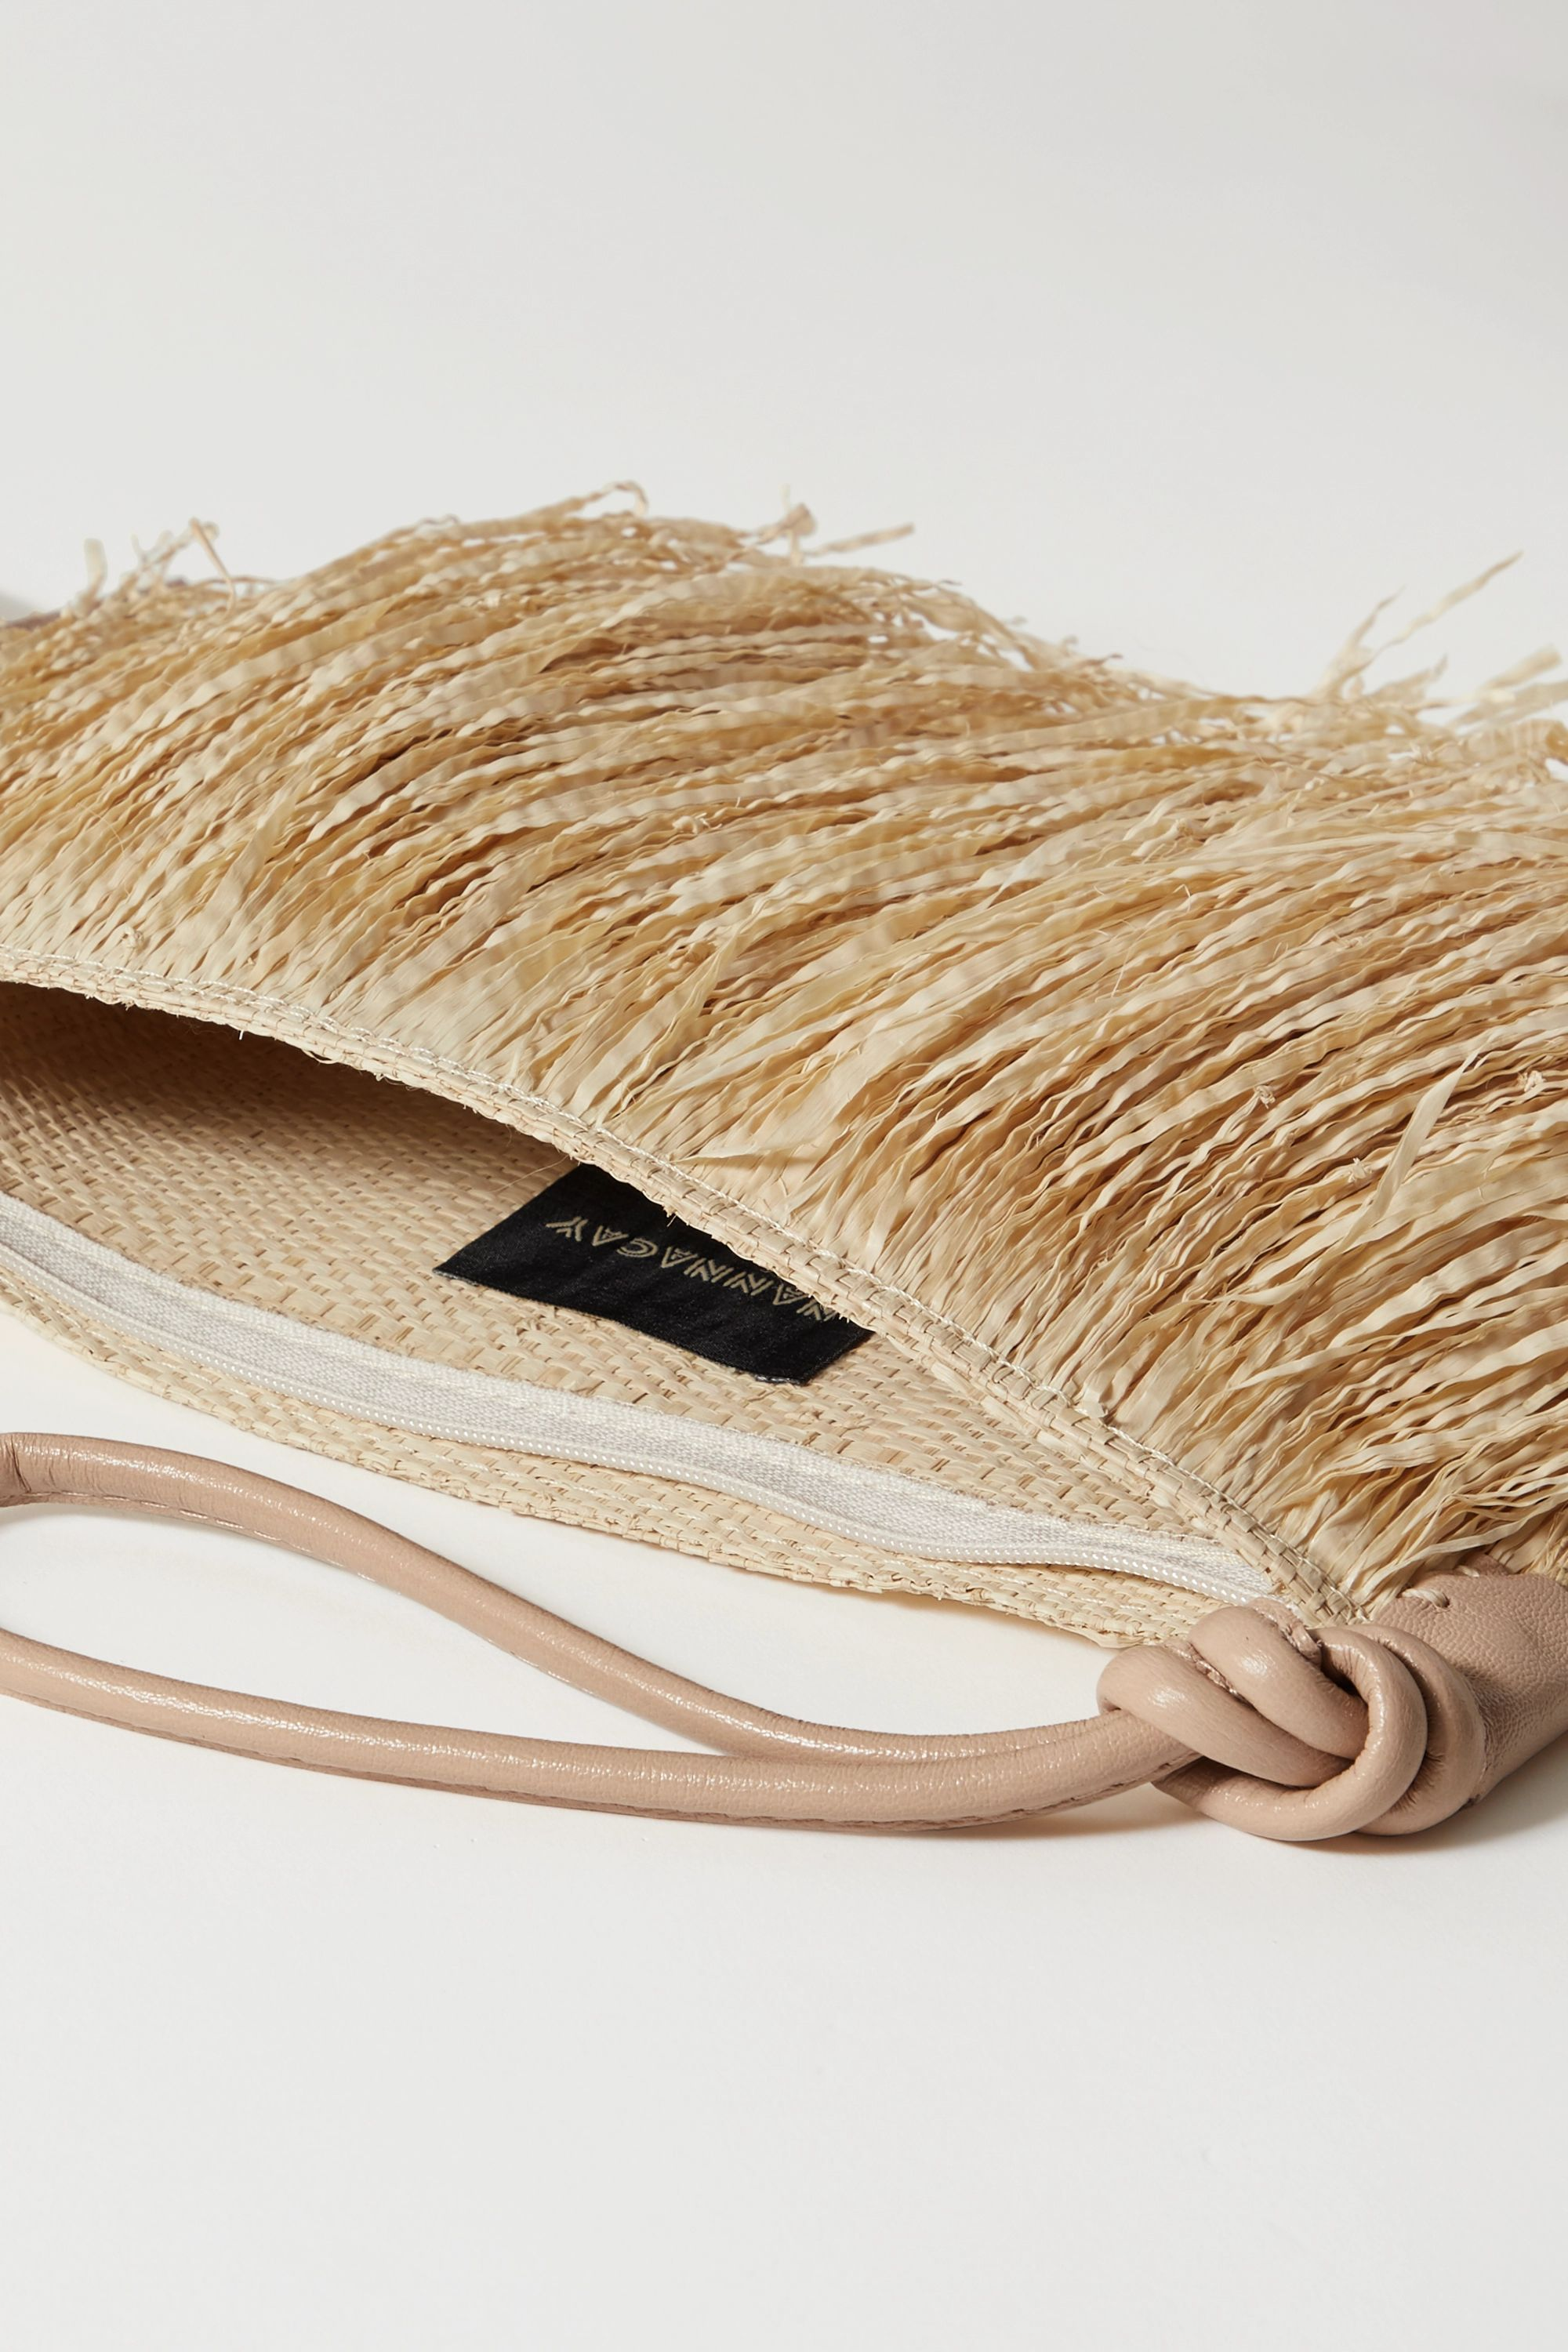 Nannacay + NET SUSTAIN Ana Isabel leather-trimmed straw clutch